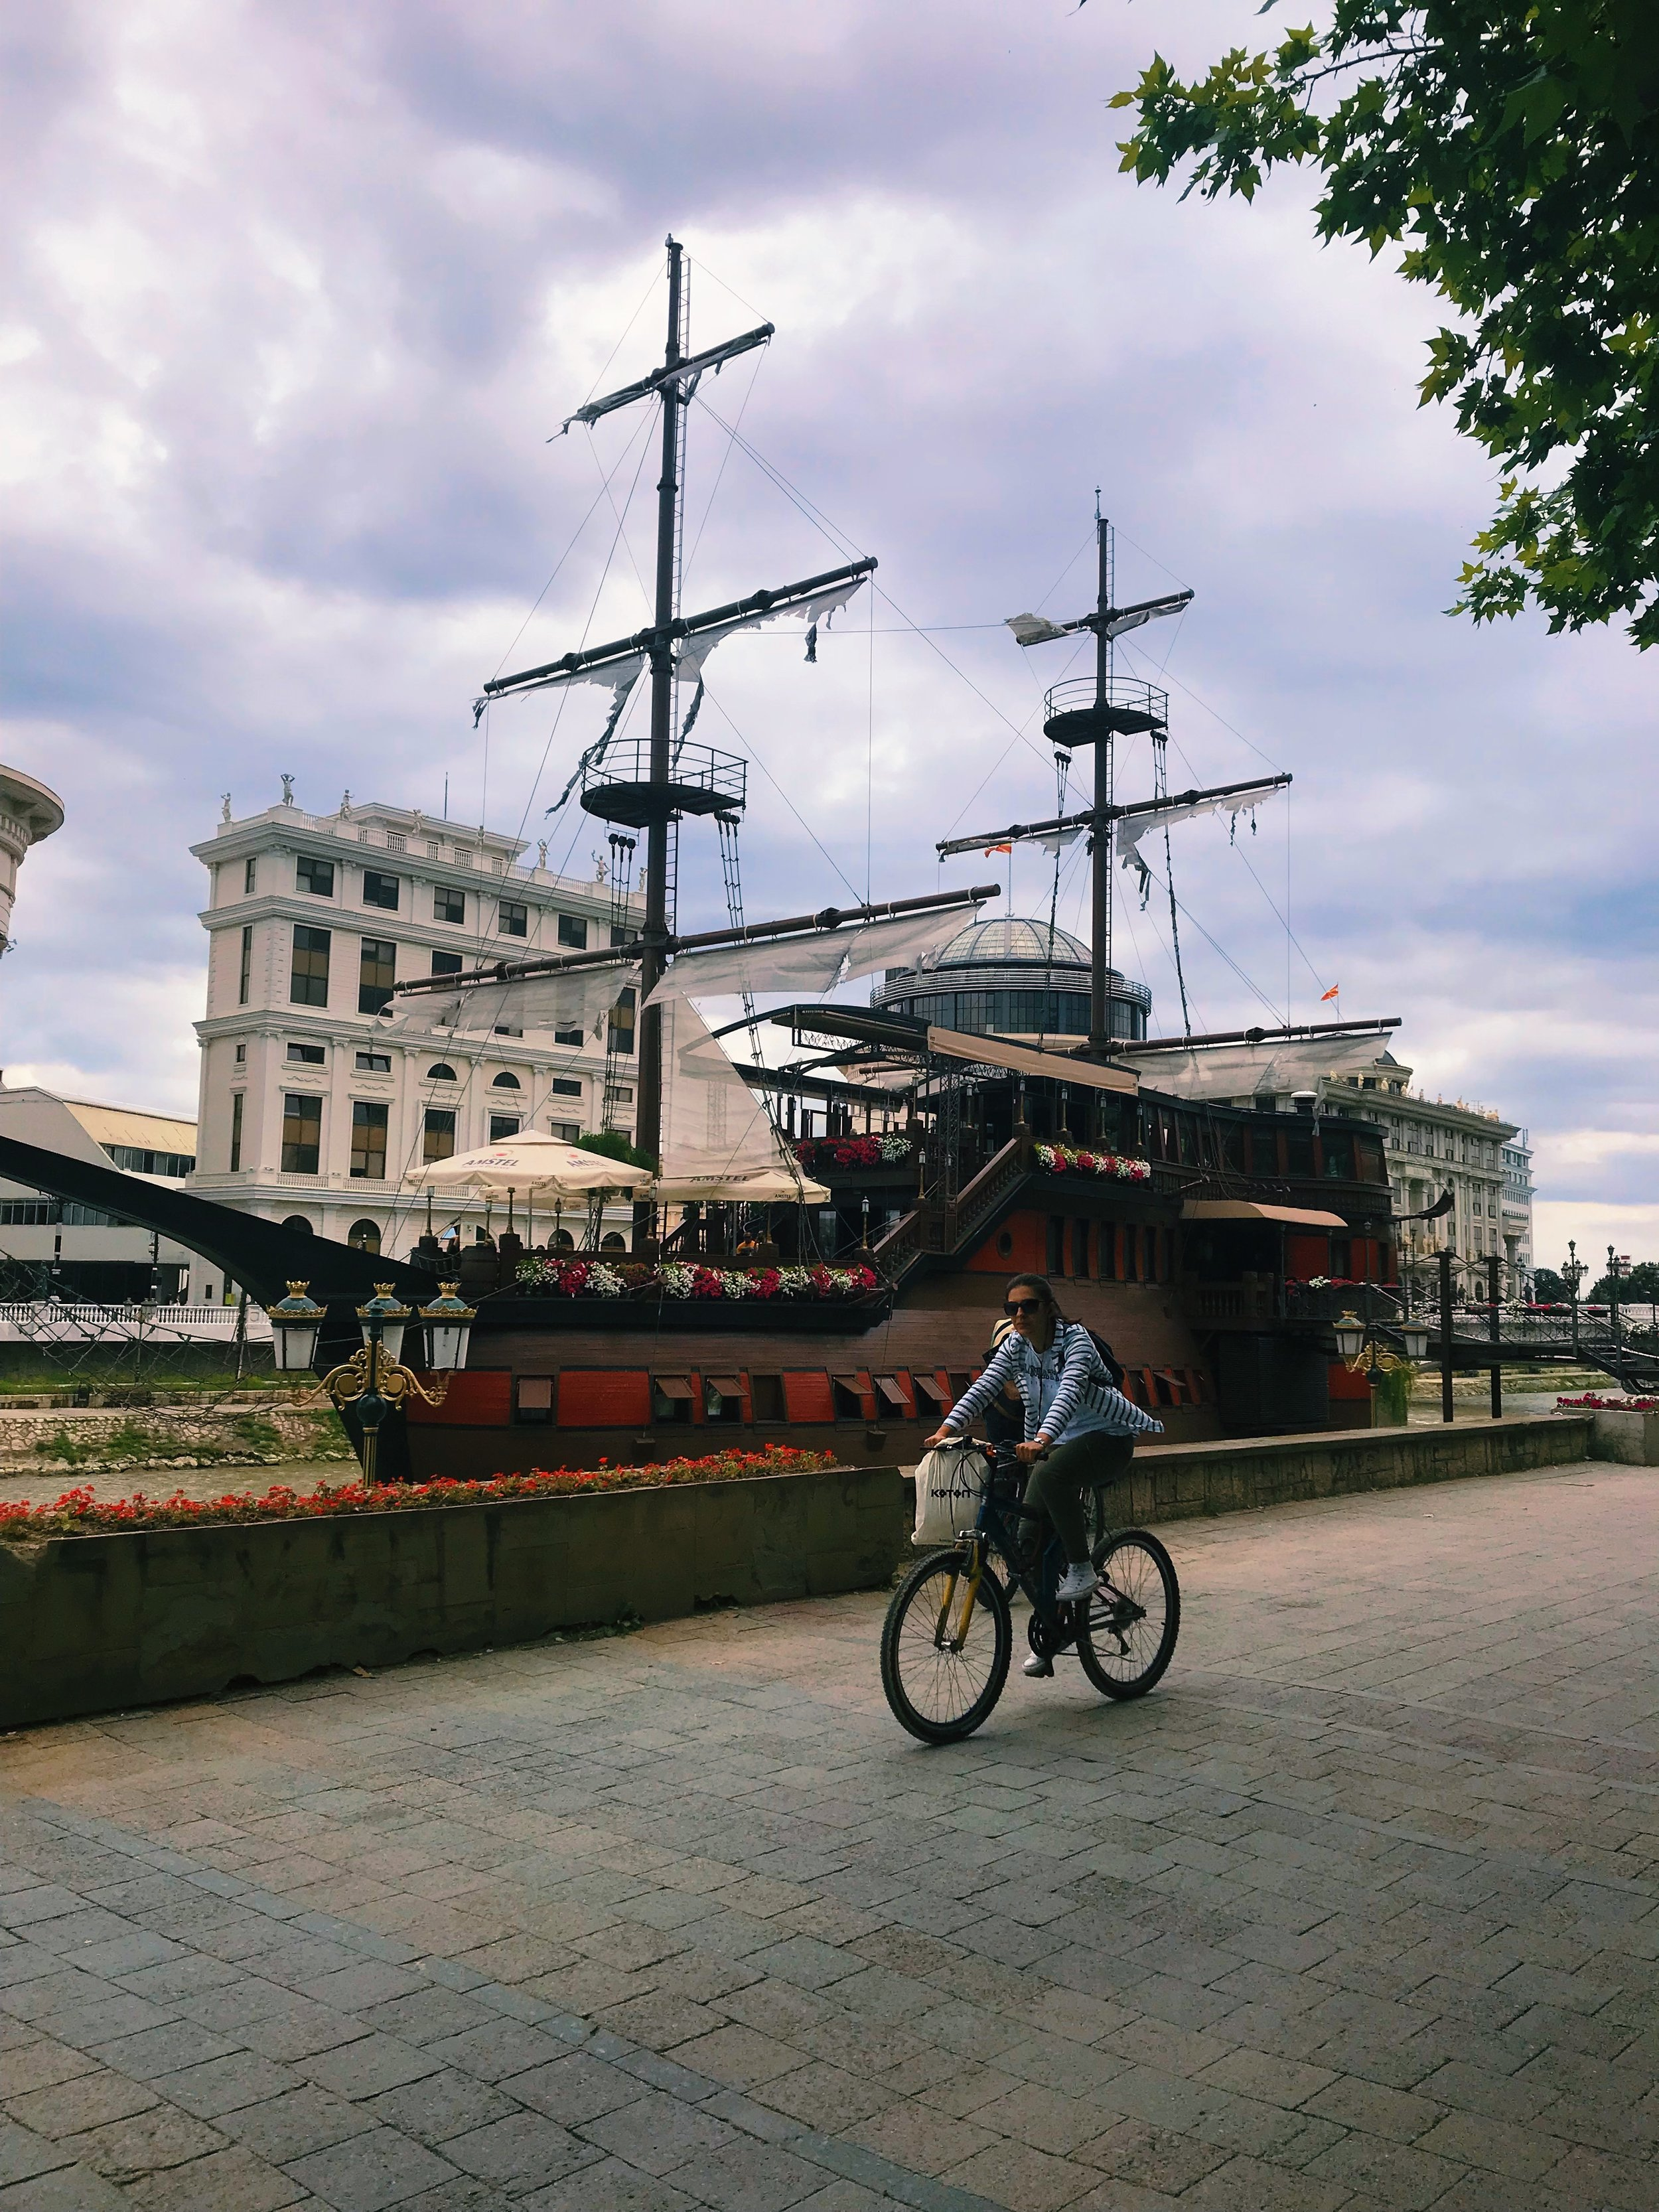 The government commissioned several random ships as part of its Skopje 2014 redevelopment project.